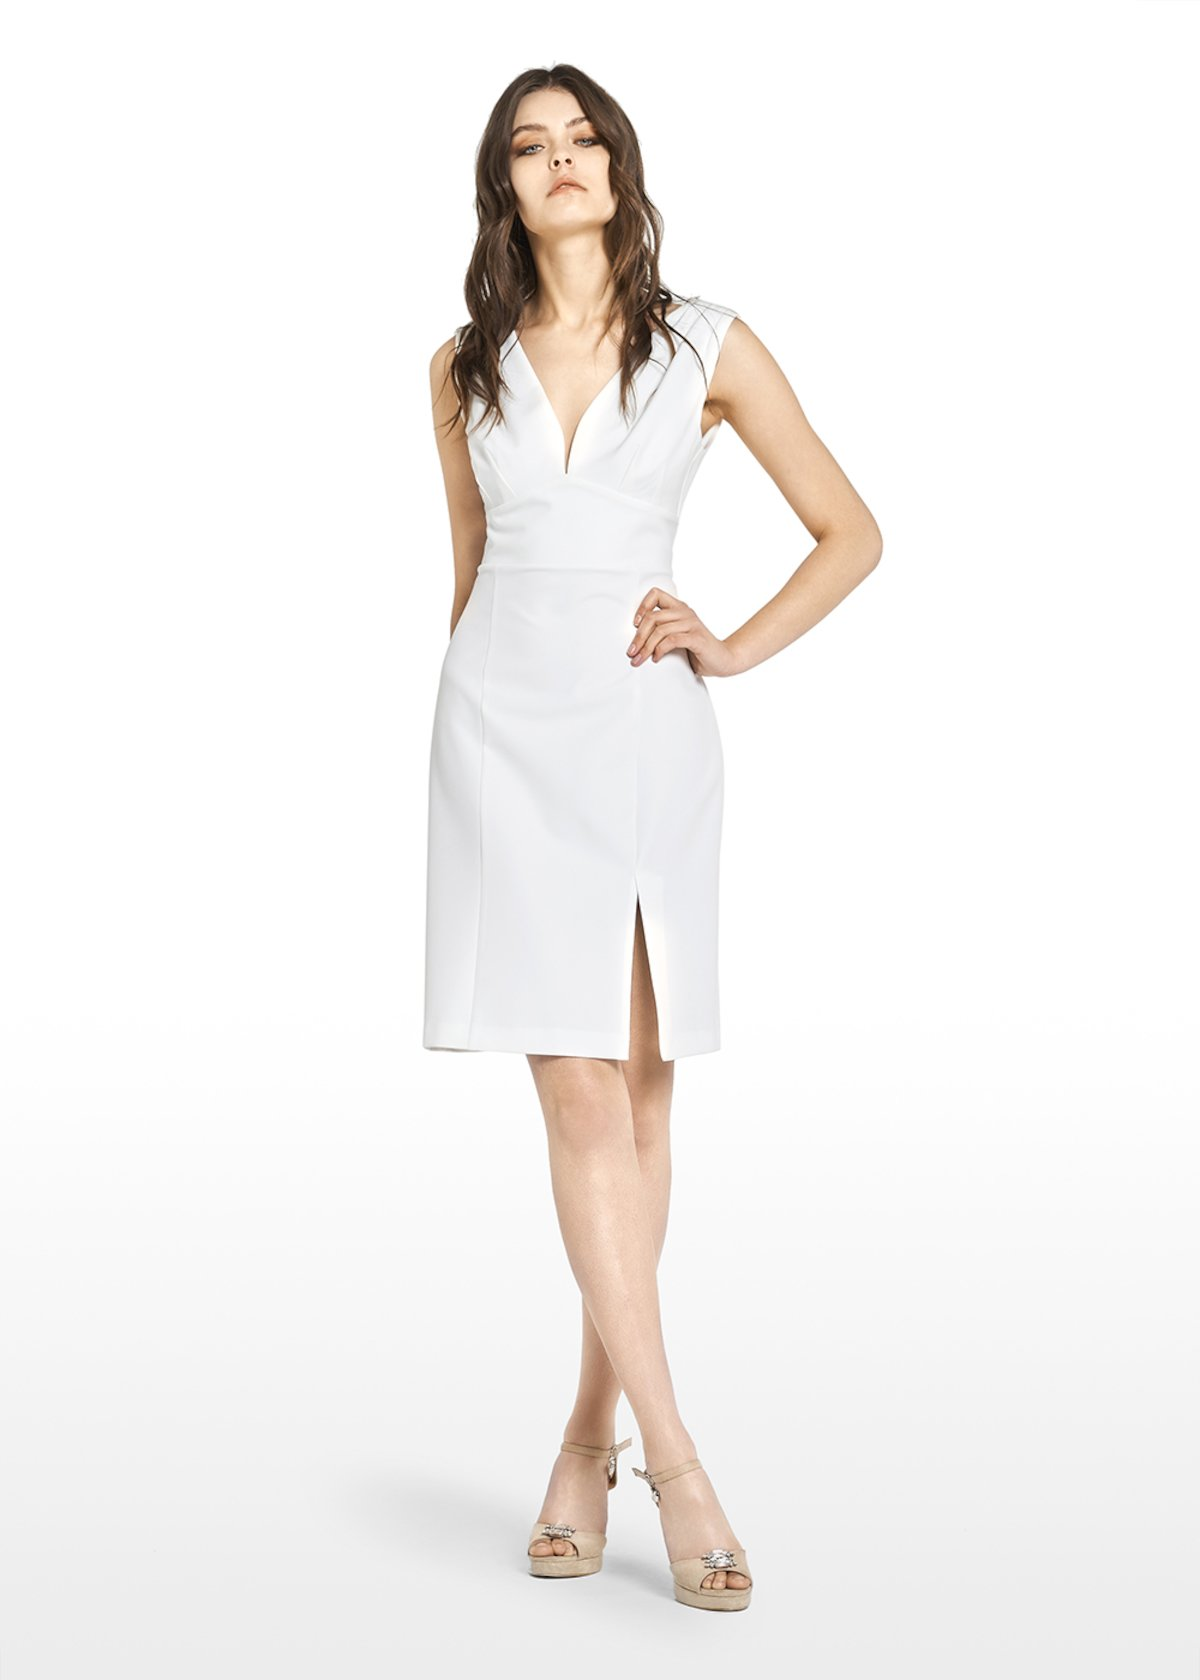 Athos sleeveless dress with V-neck - White - Woman - Category image